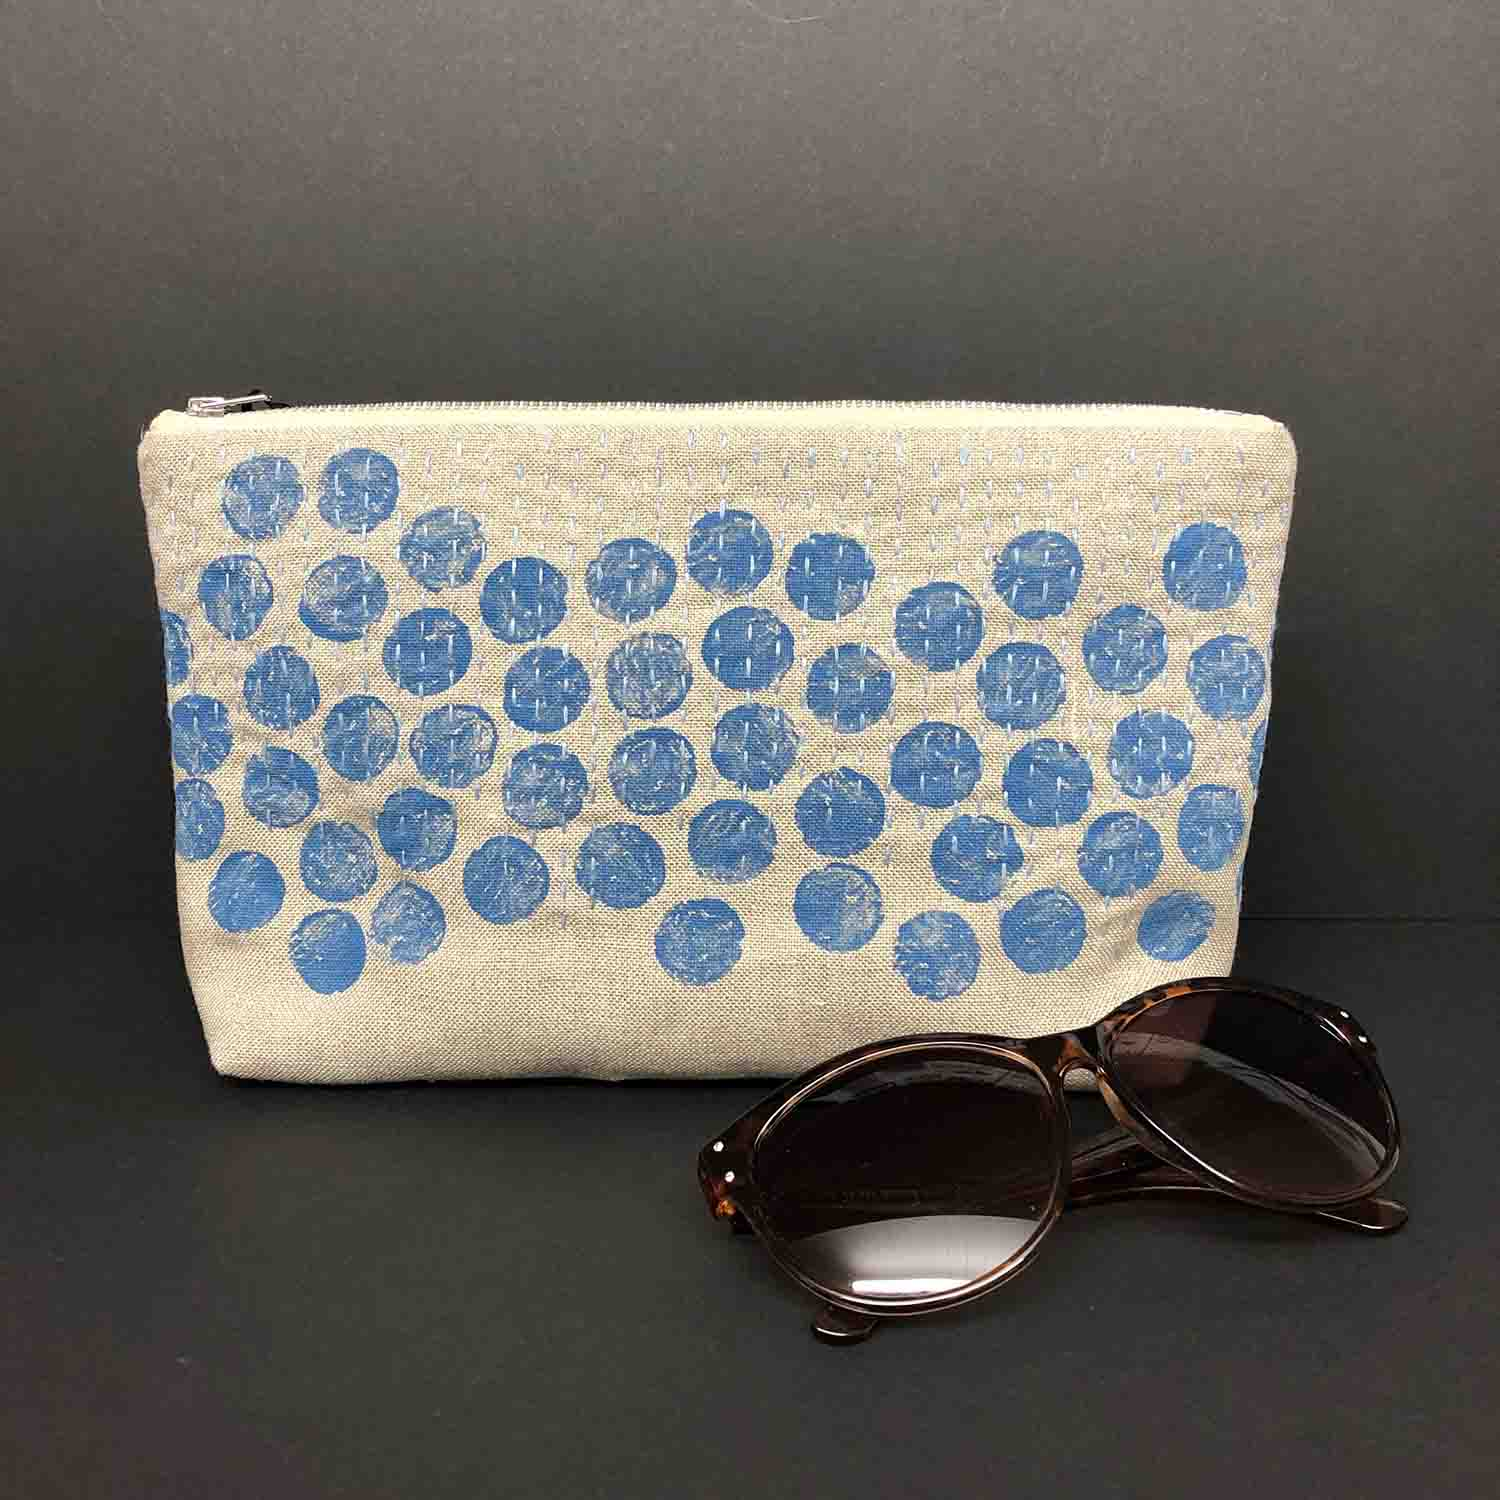 Denim Spots Clutch by Colette Moscrop